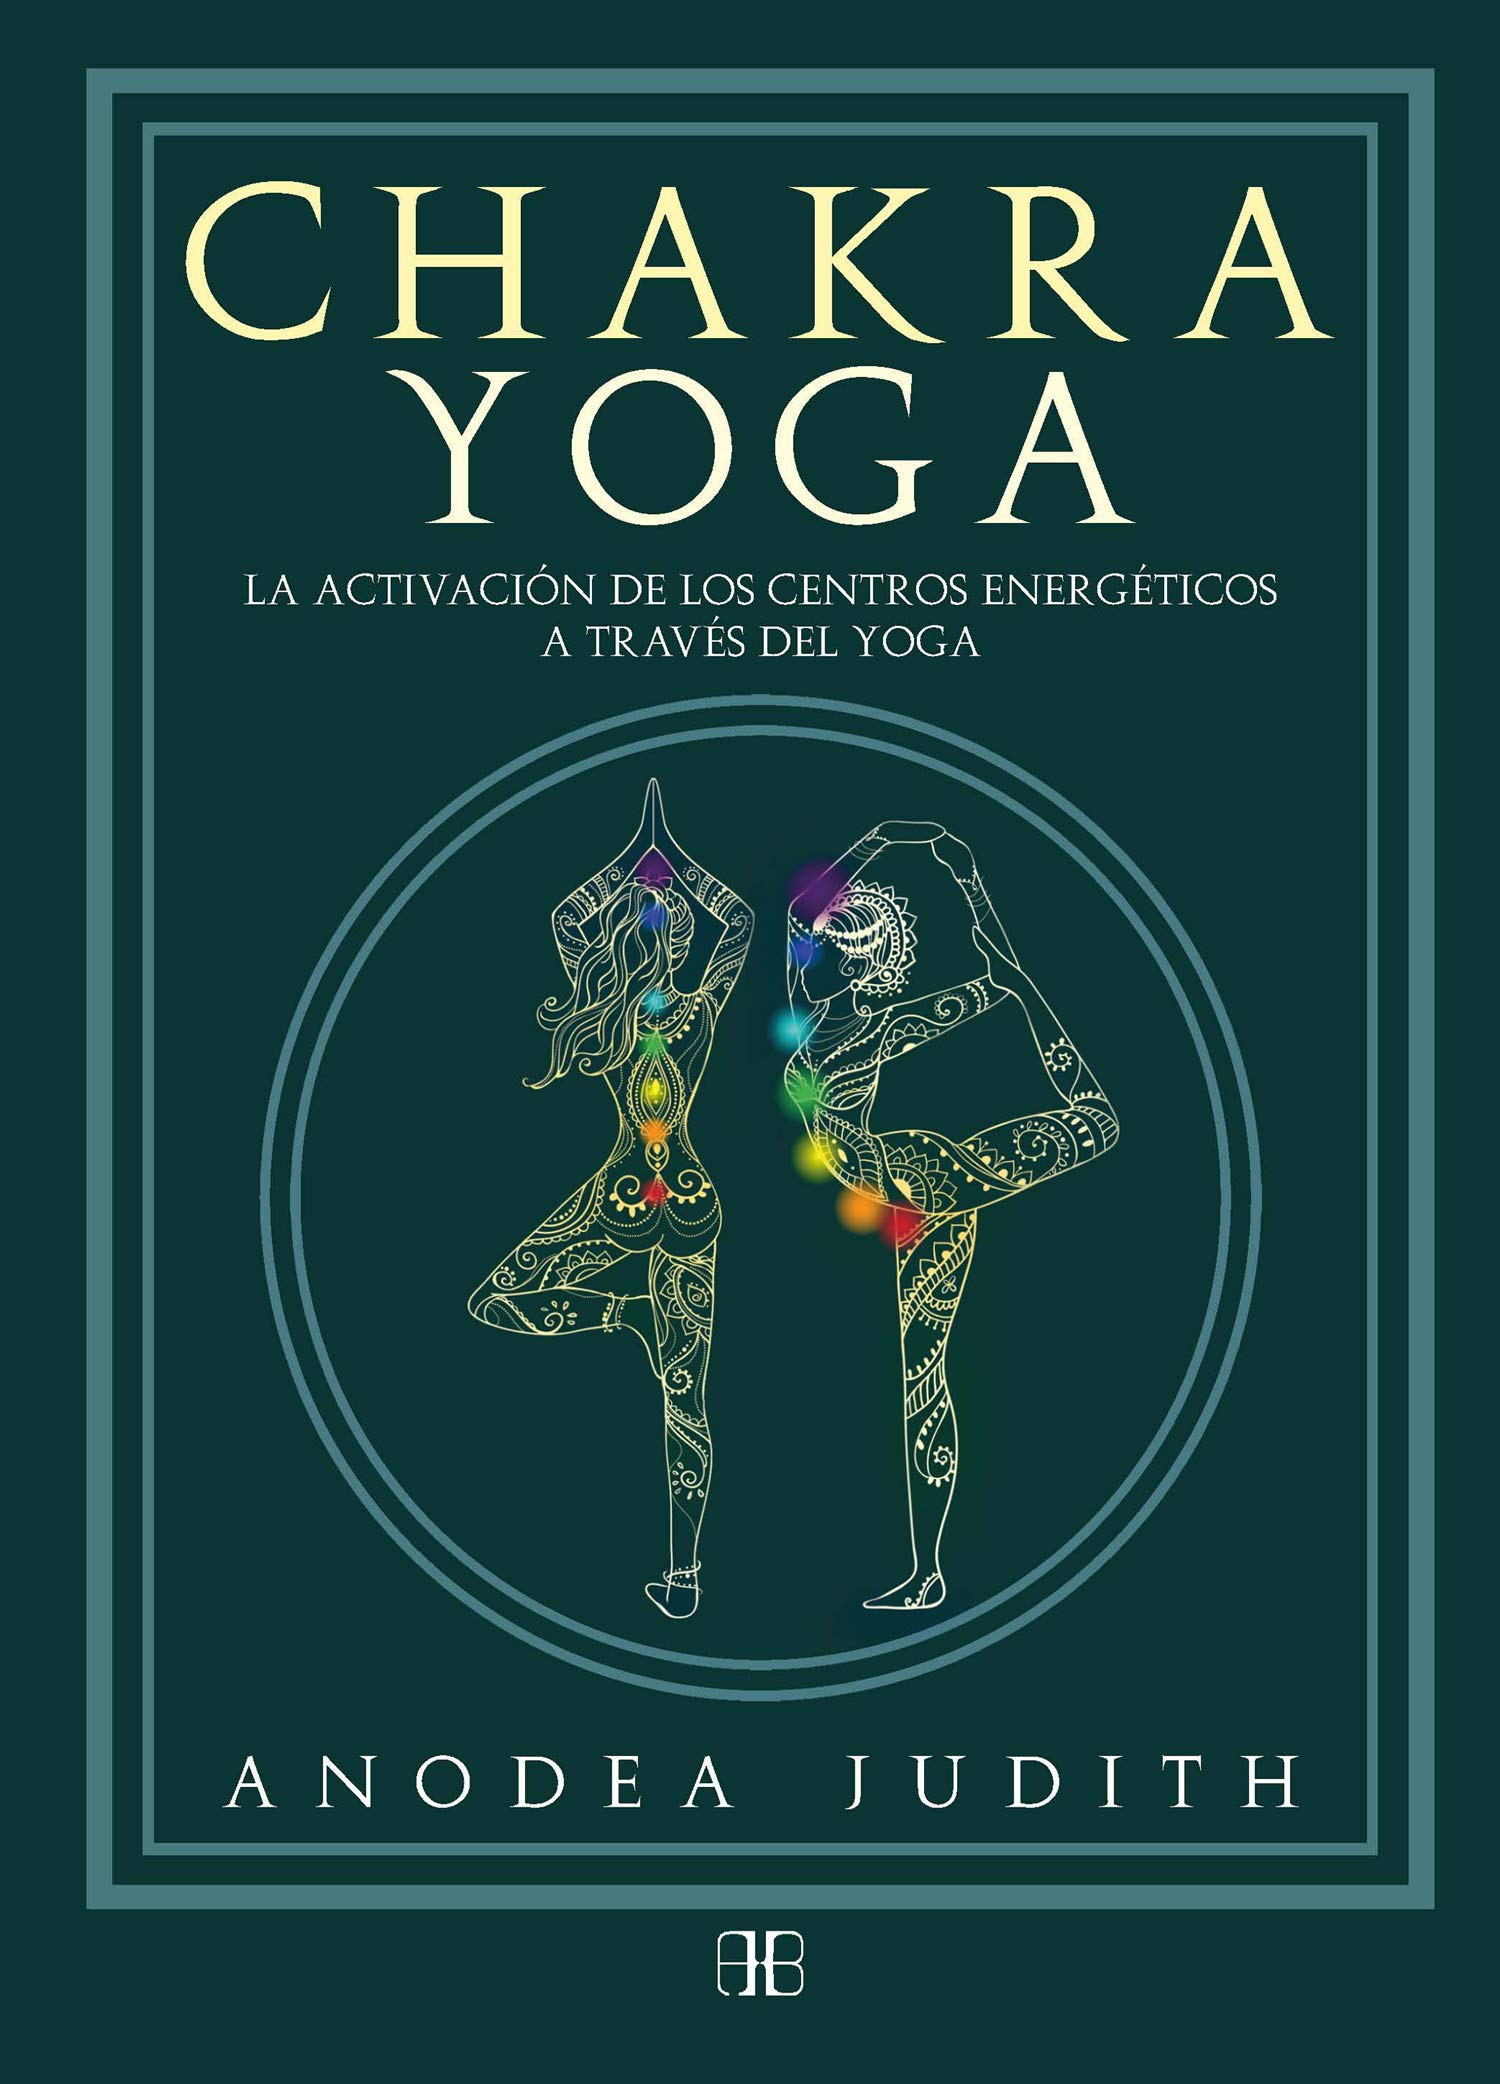 Chakra yoga: Judith Anodea: 9788415292777: Amazon.com: Books